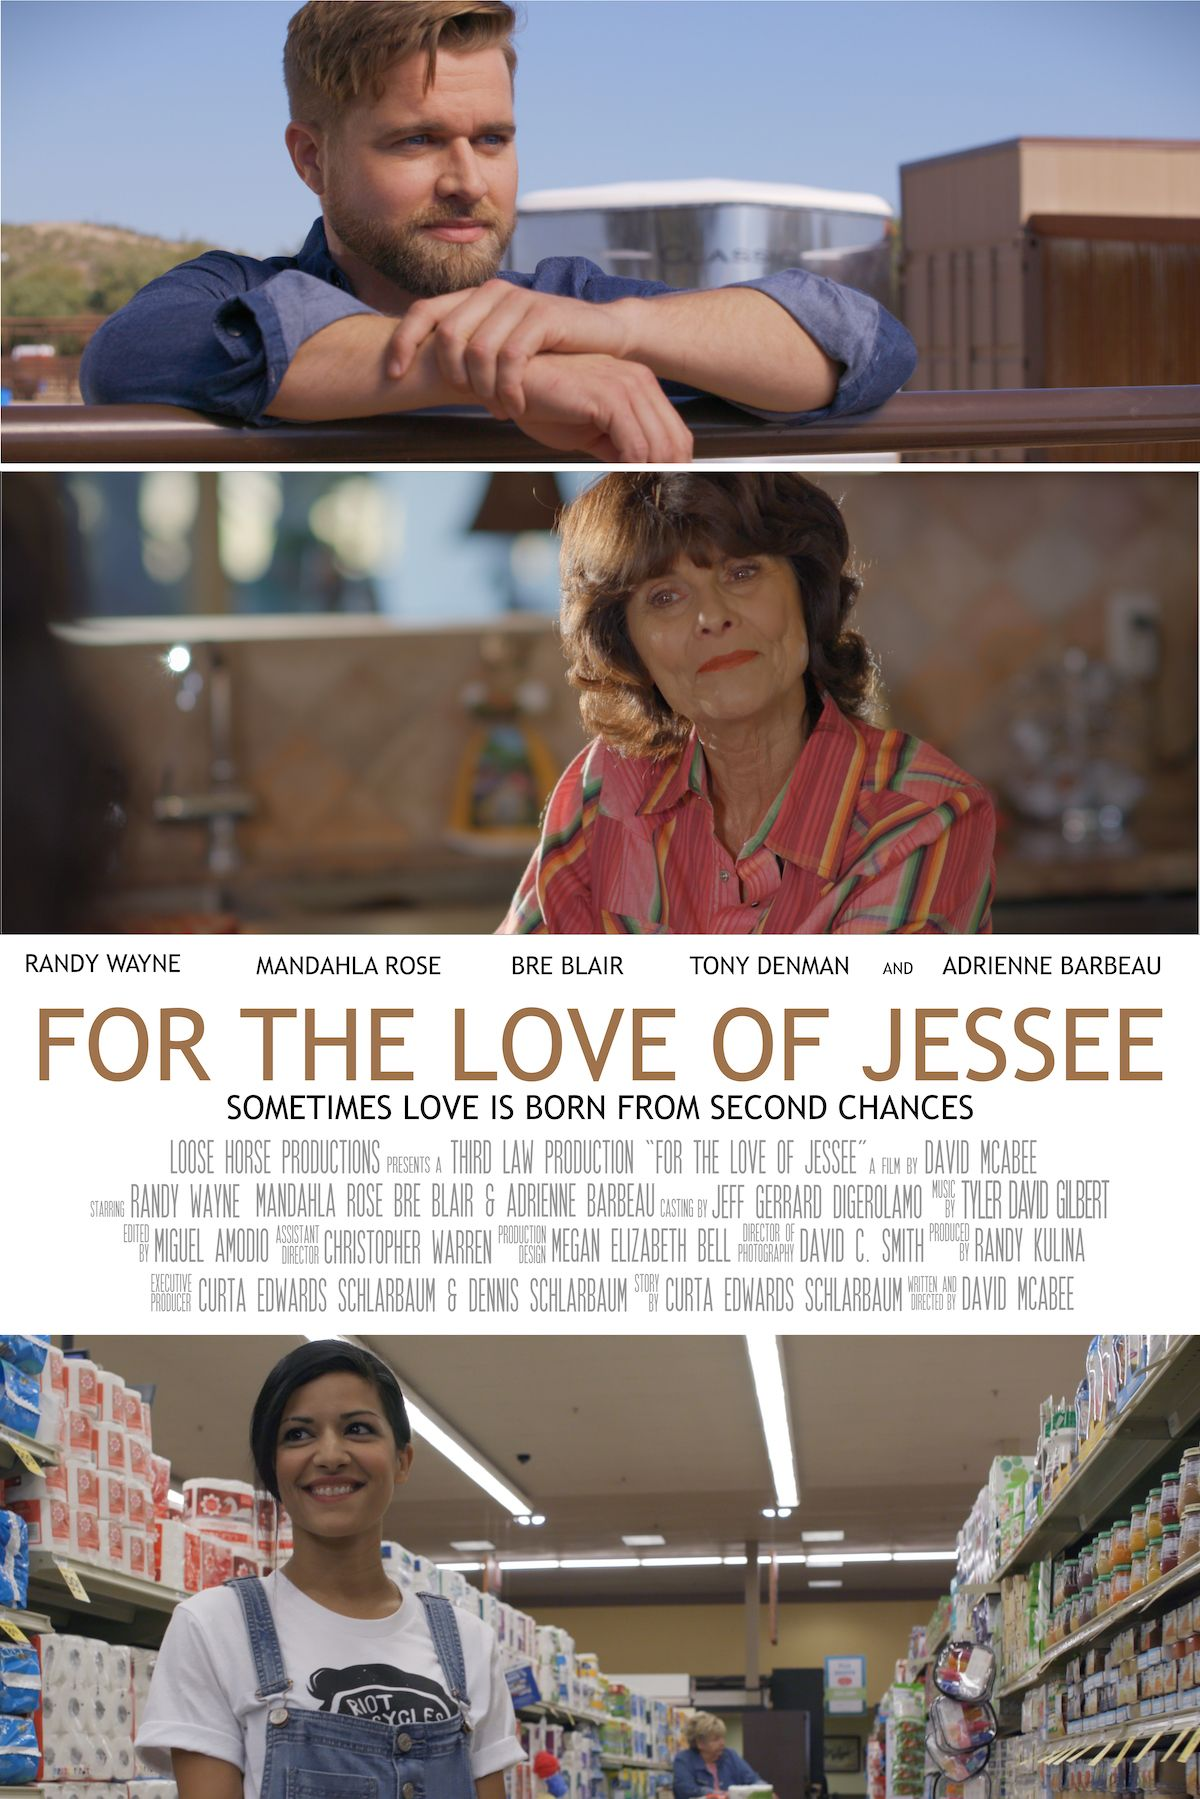 Film Review 8220 For The Love Of Jessee 8221 In 2020 Film Review The Baby Sitters Club Screenplay Writer